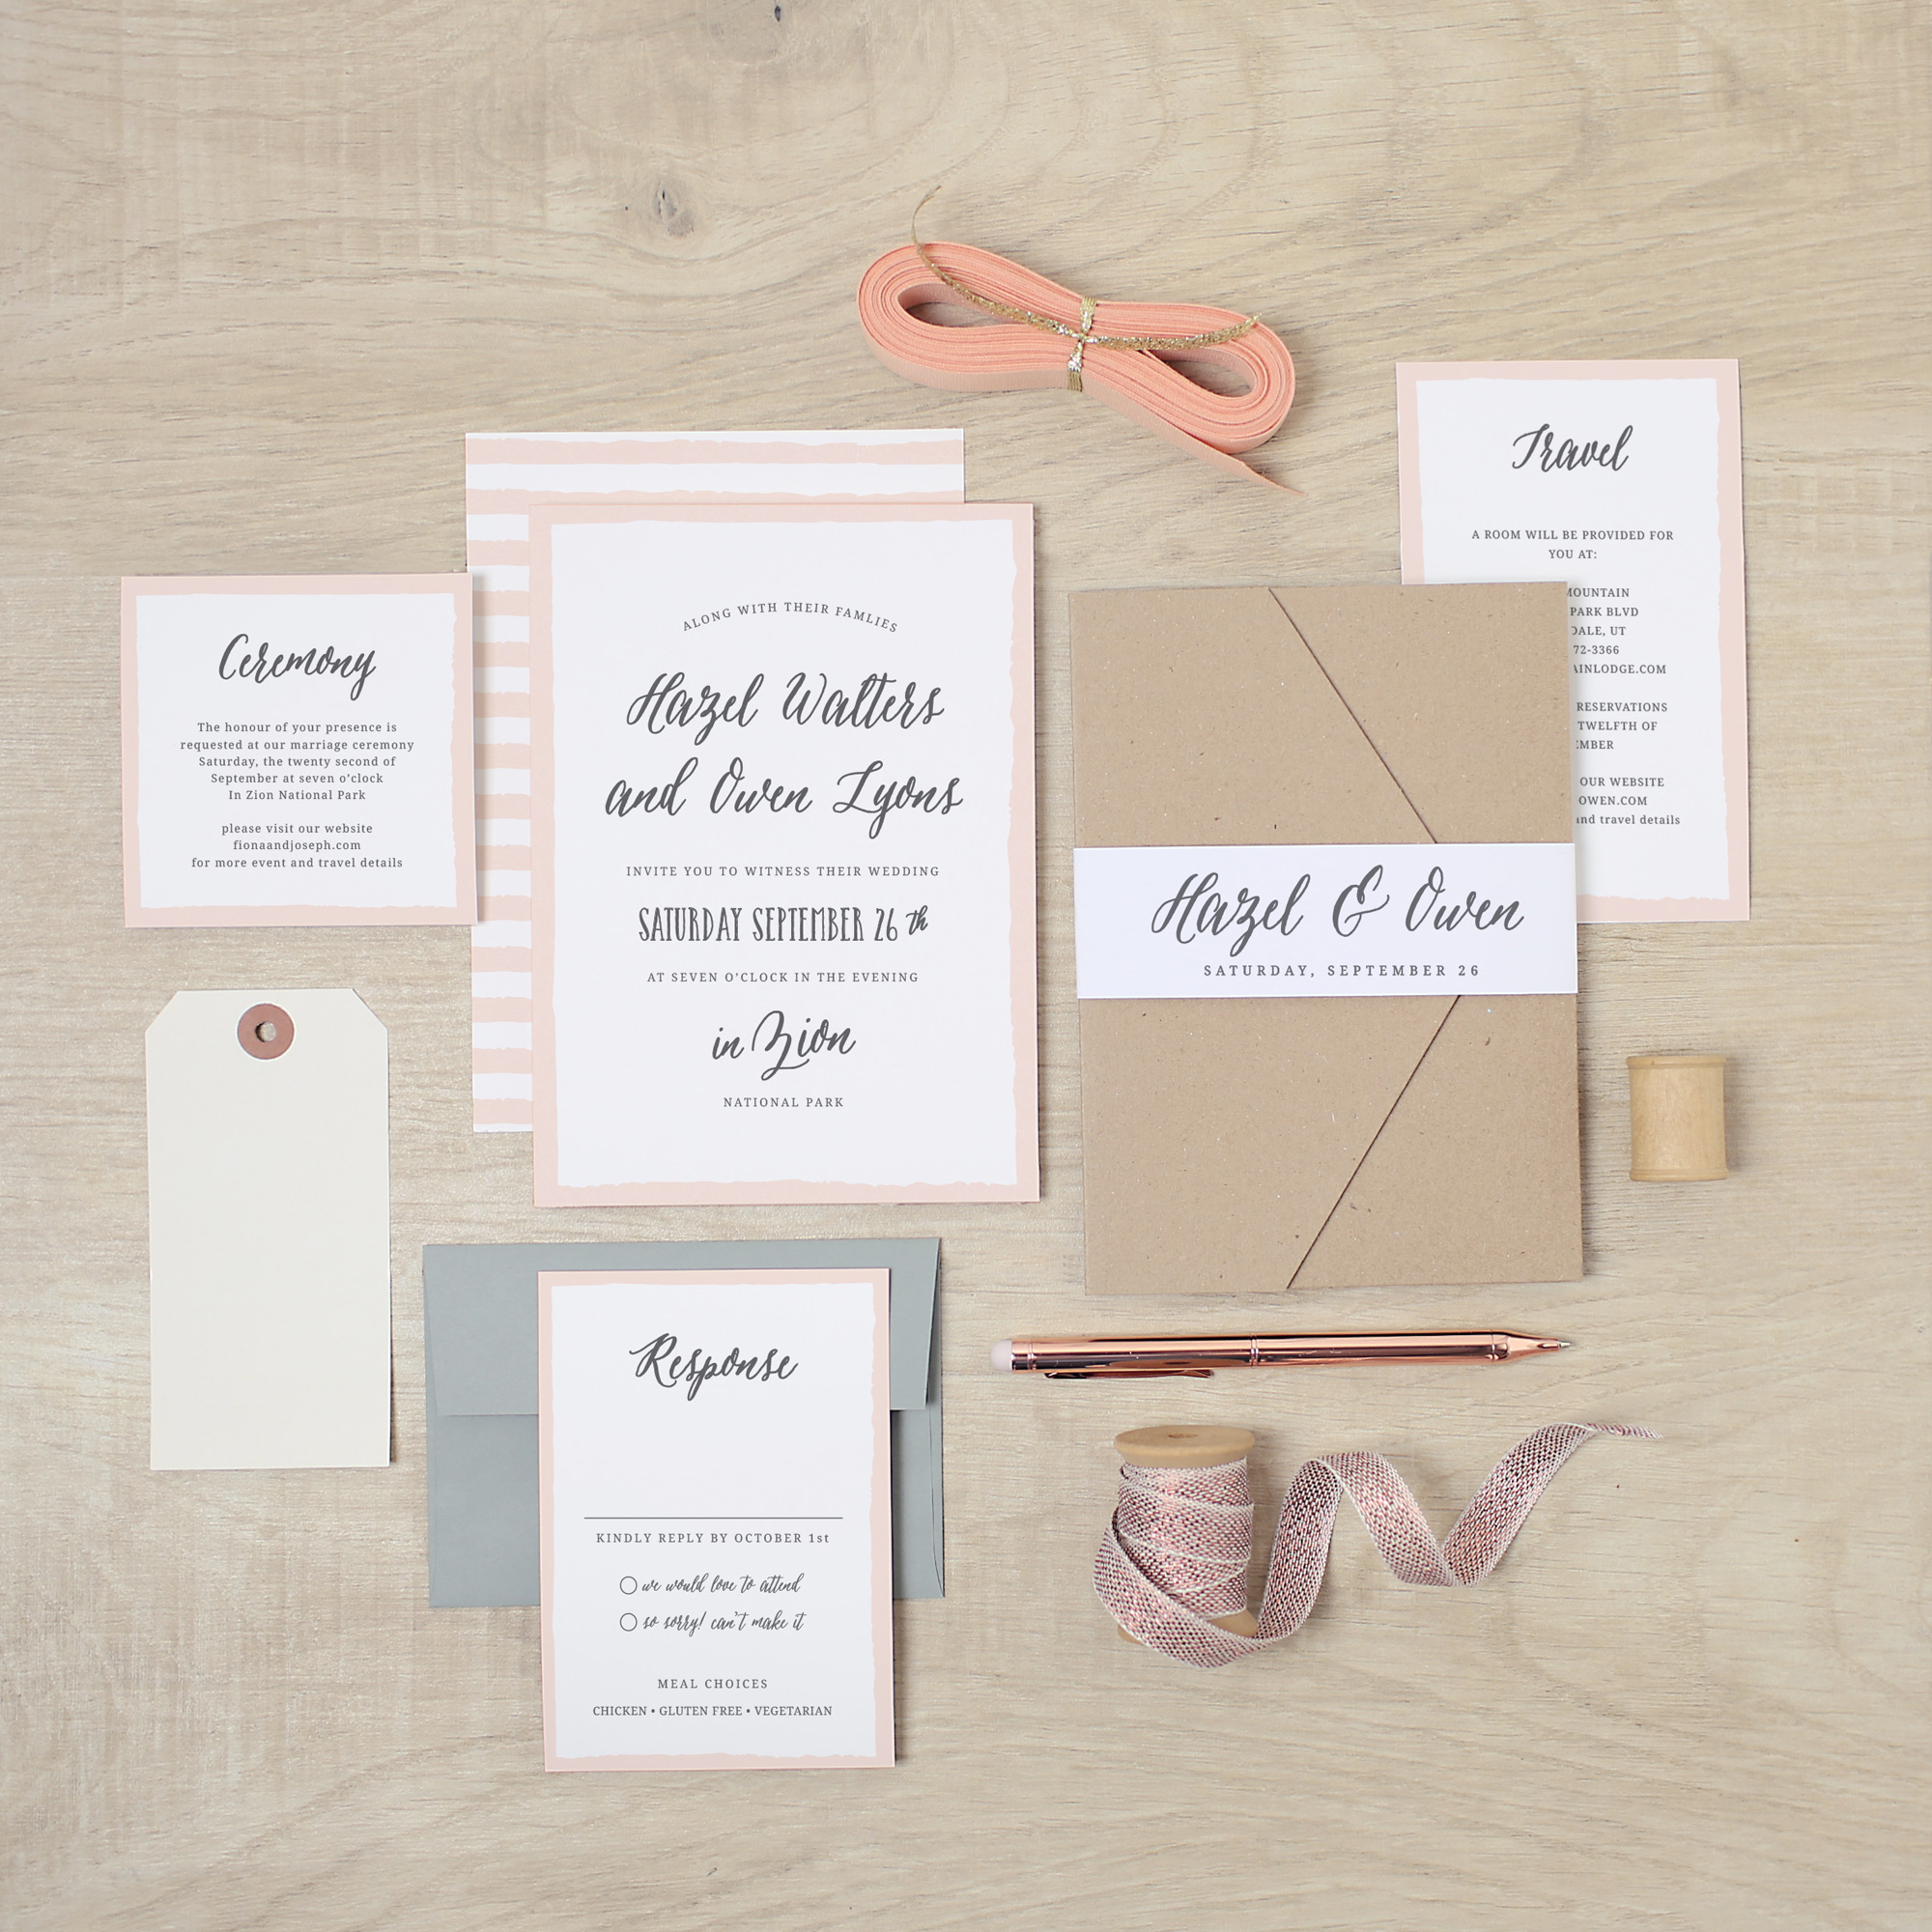 romantic and simple striped wedding invitations with kraft envelopes by Basic Invite